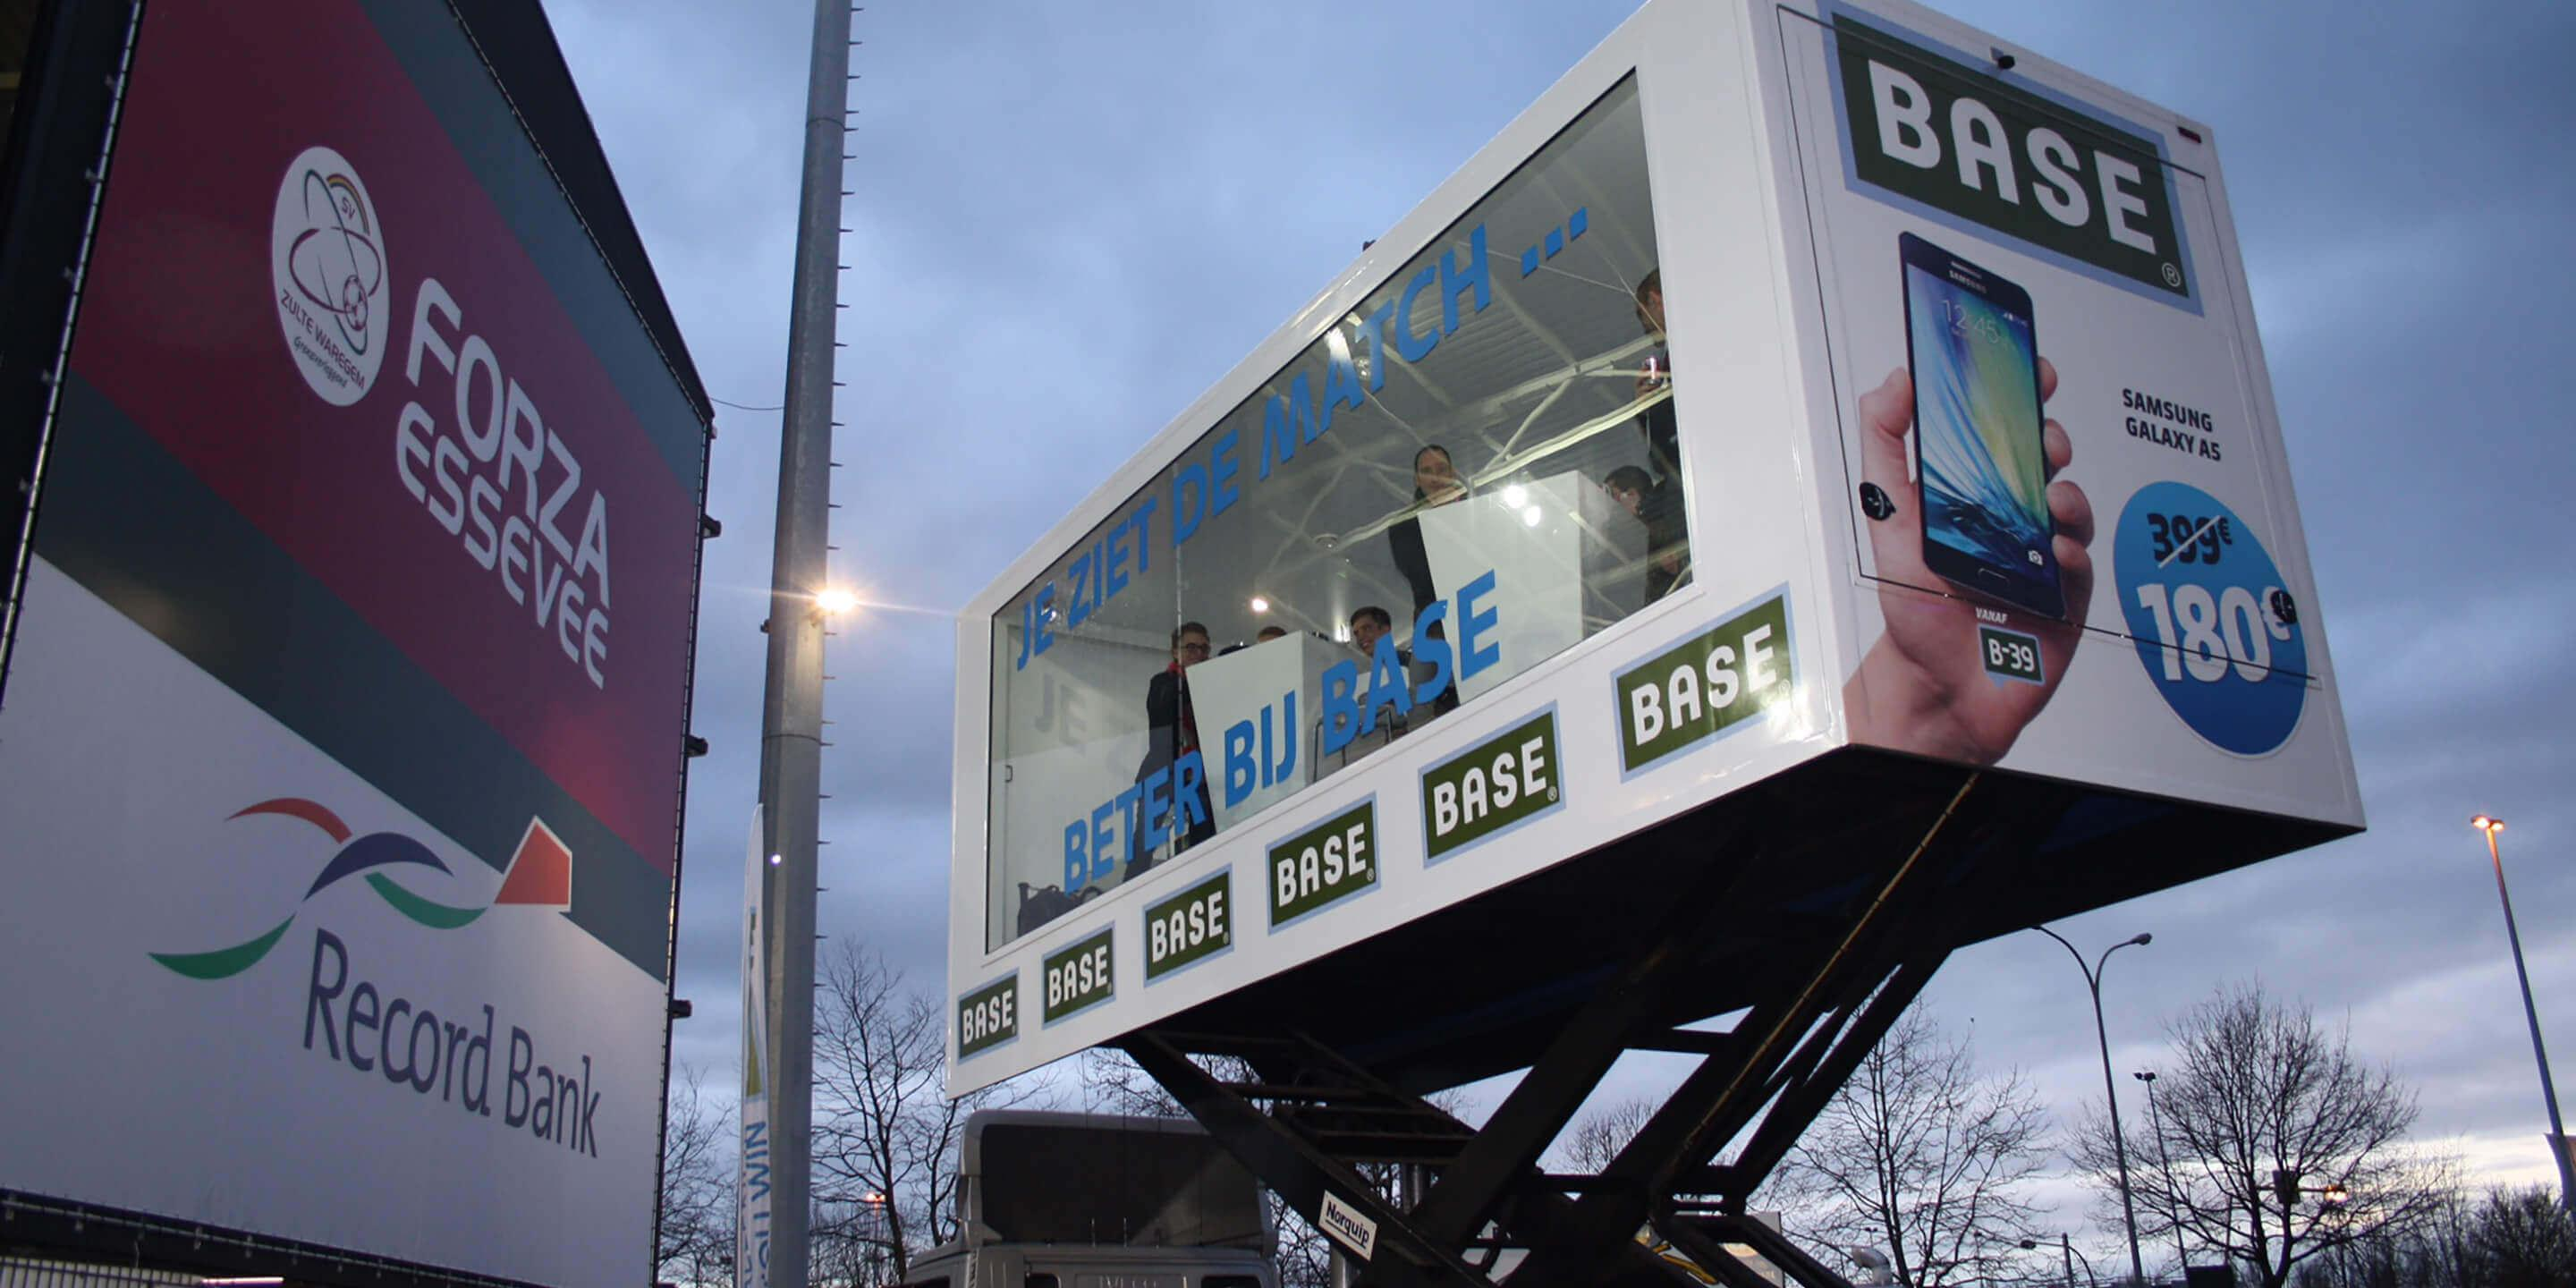 Display Trailers: The Sky Box Mobile Showroom